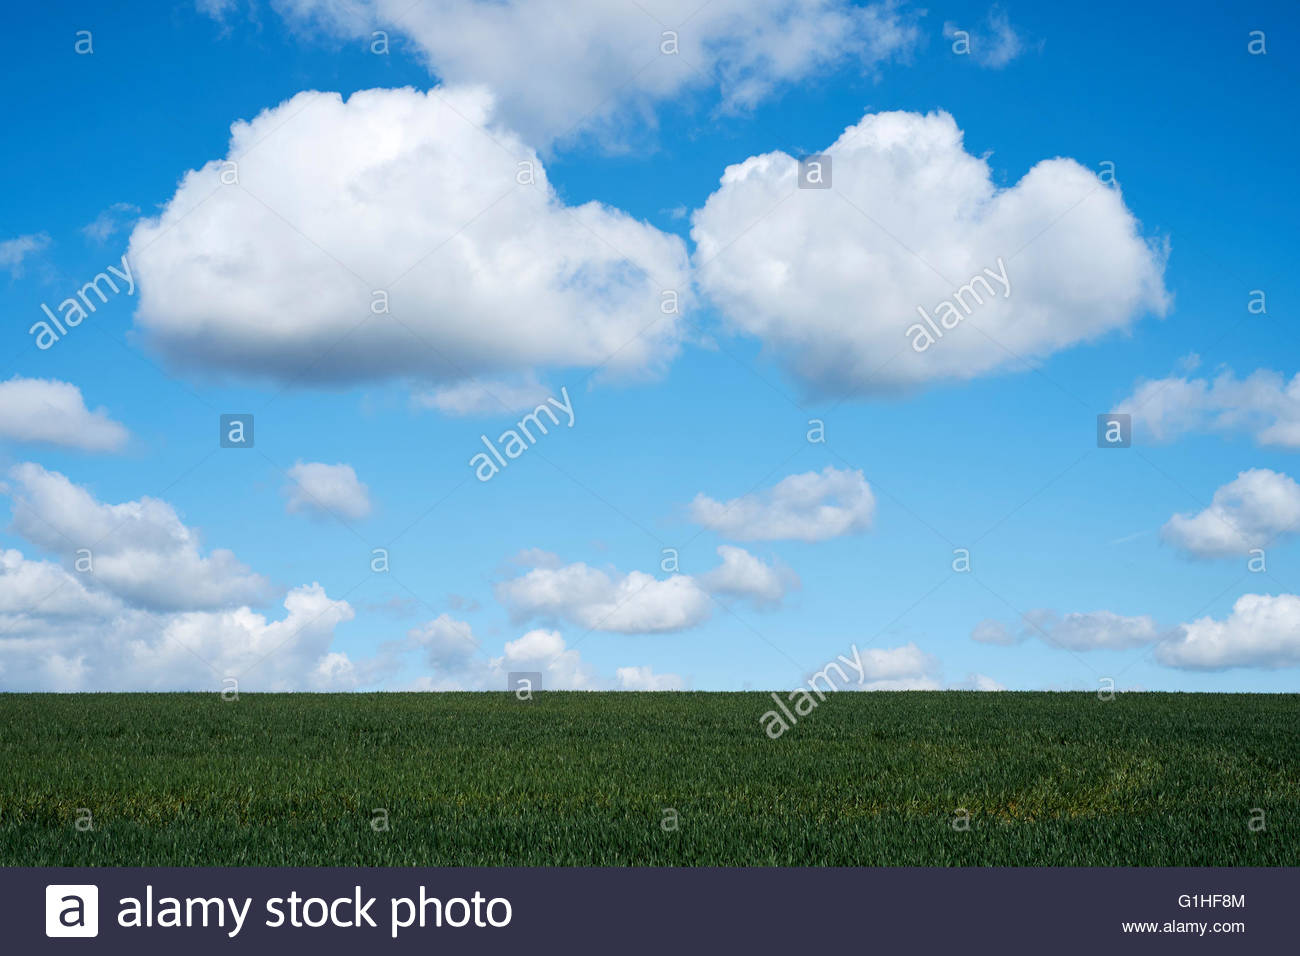 Cumulonimbus clouds forming against a bright blue sky over agricultural land. Cambridgeshire, UK. - Stock Image